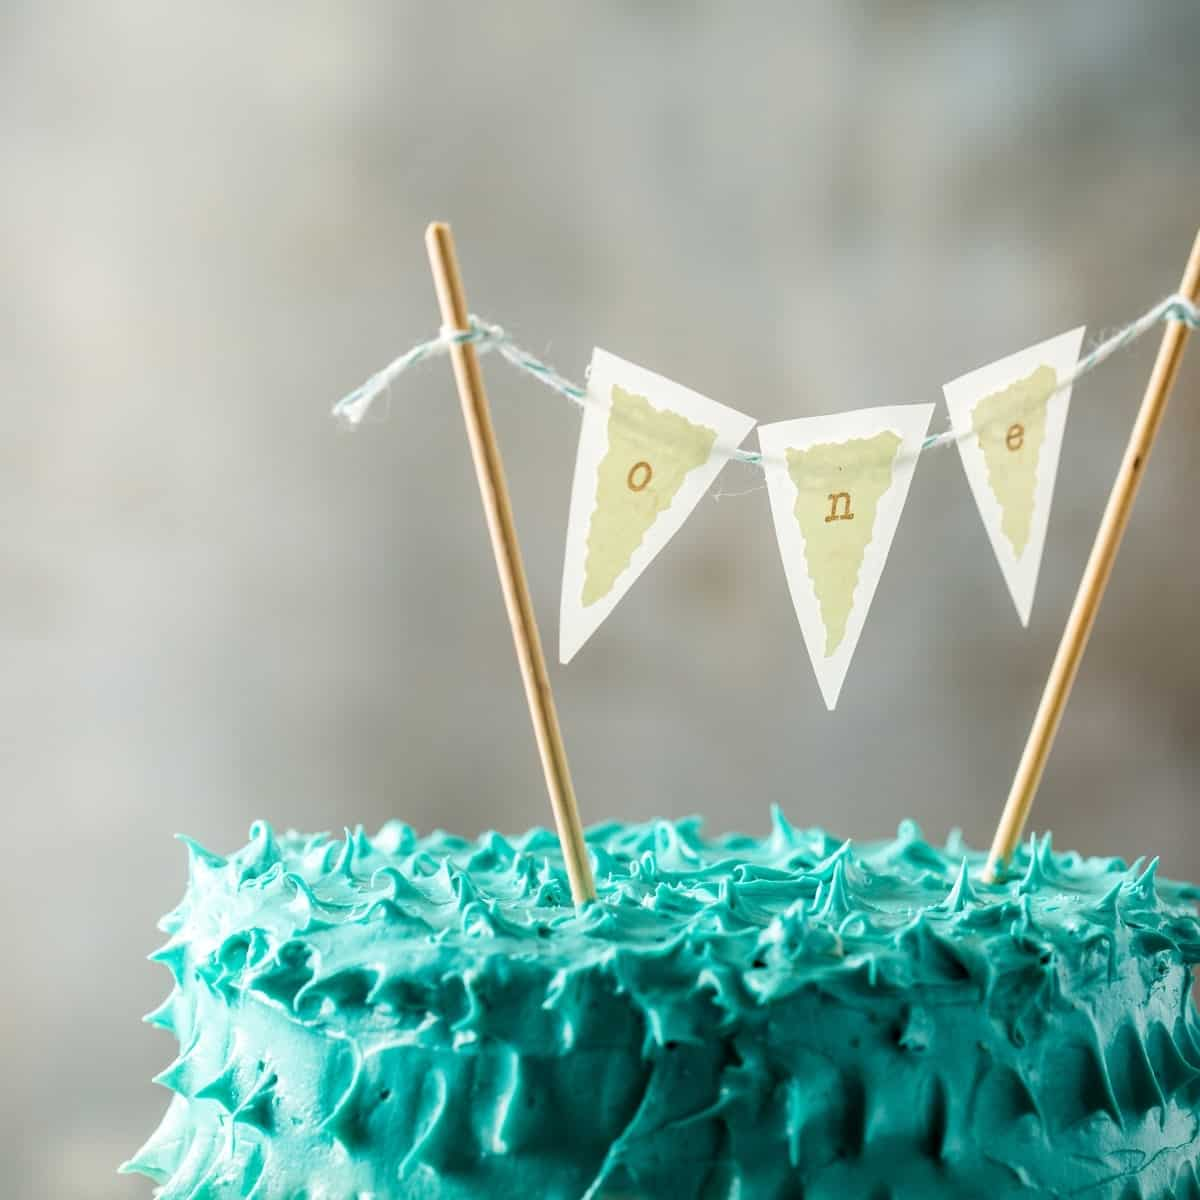 Vintage Circus Theme First Birthday Party Healthier Smash Cake - Jena Carlin Photography - Web-10